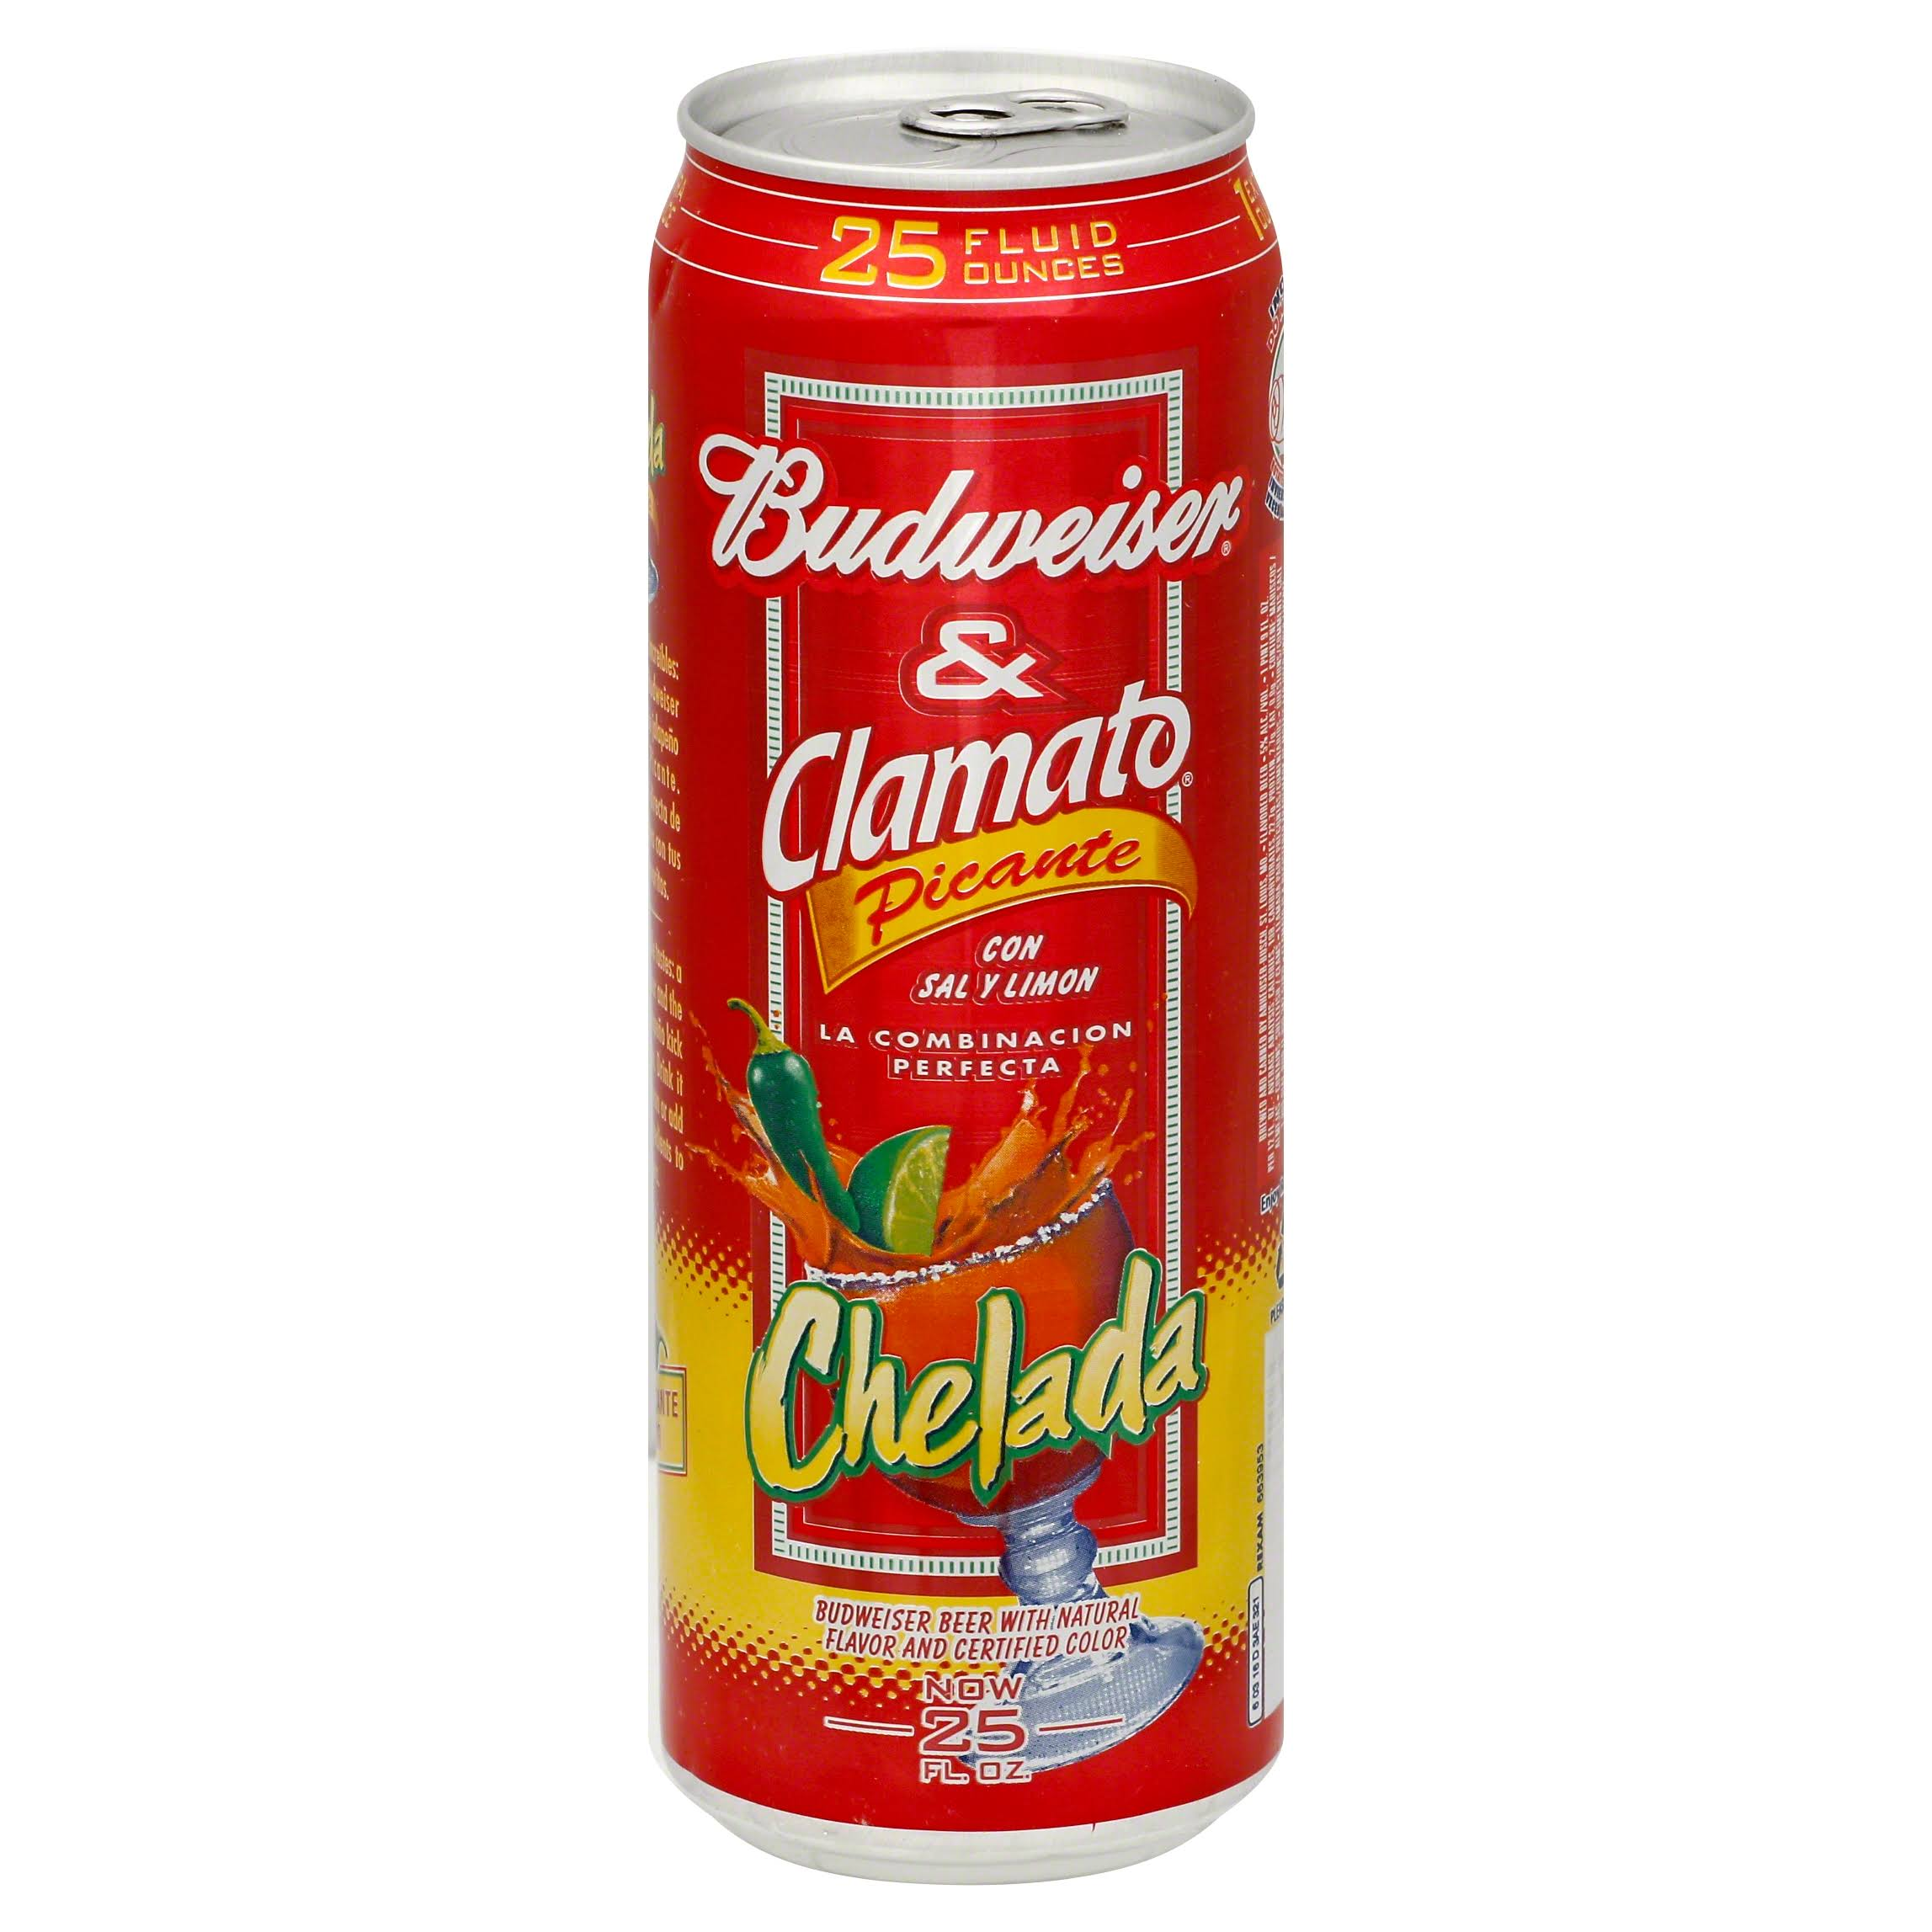 Budweiser and Clamato Picante Chelada - With Salt And Lime, 25fl oz